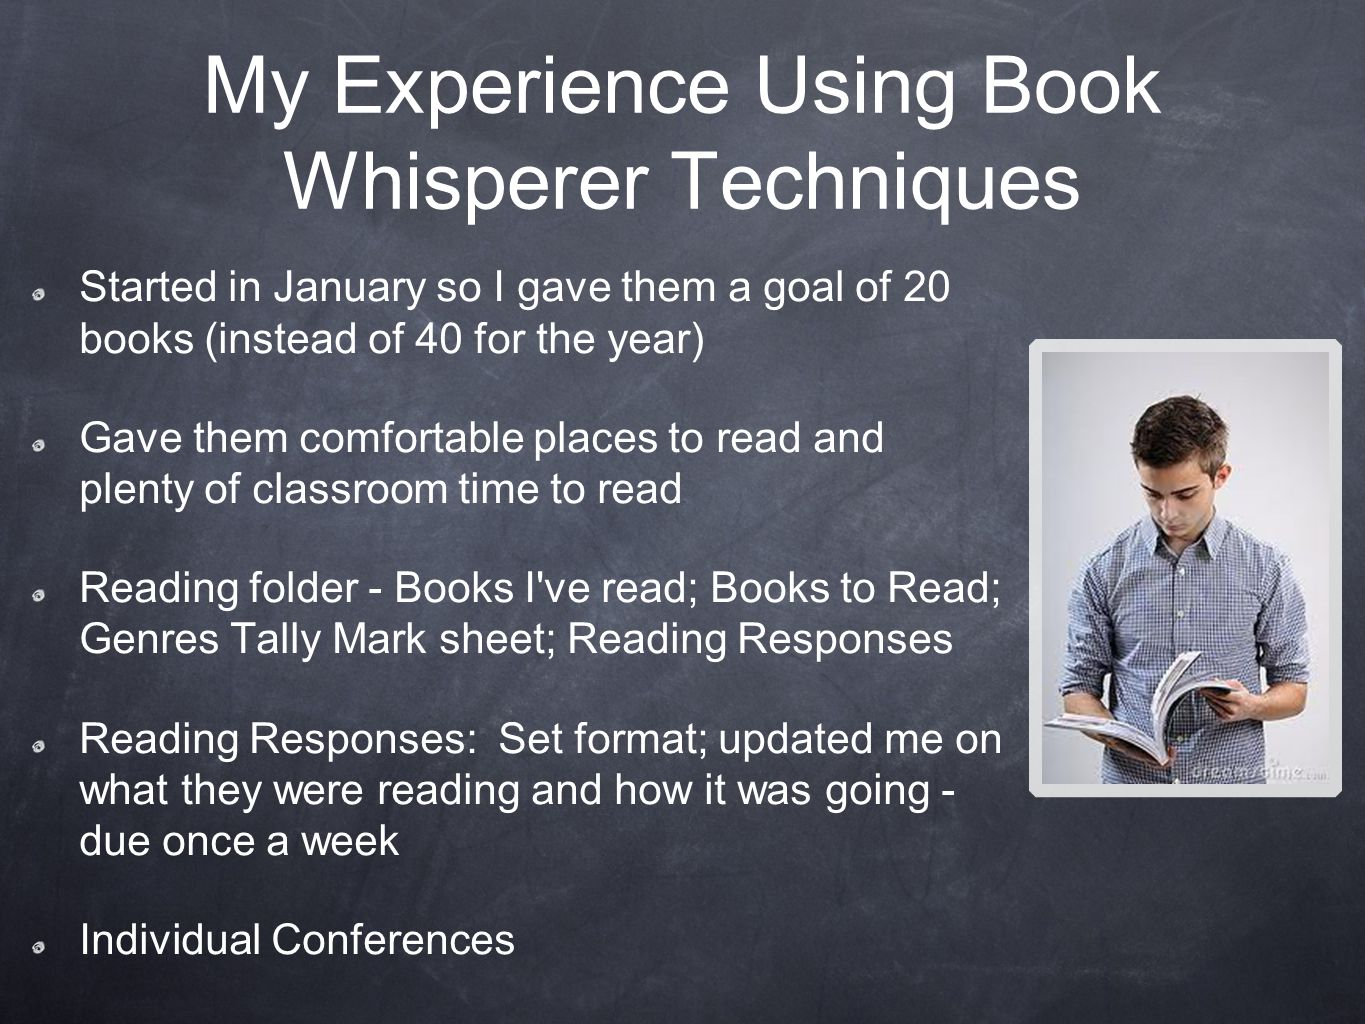 My Experience Using Book Whisperer Techniques Started in January so I gave them a goal of 20 books (instead of 40 for the year) Gave them comfortable places to read and plenty of classroom time to read Reading folder - Books I ve read; Books to Read; Genres Tally Mark sheet; Reading Responses Reading Responses: Set format; updated me on what they were reading and how it was going - due once a week Individual Conferences